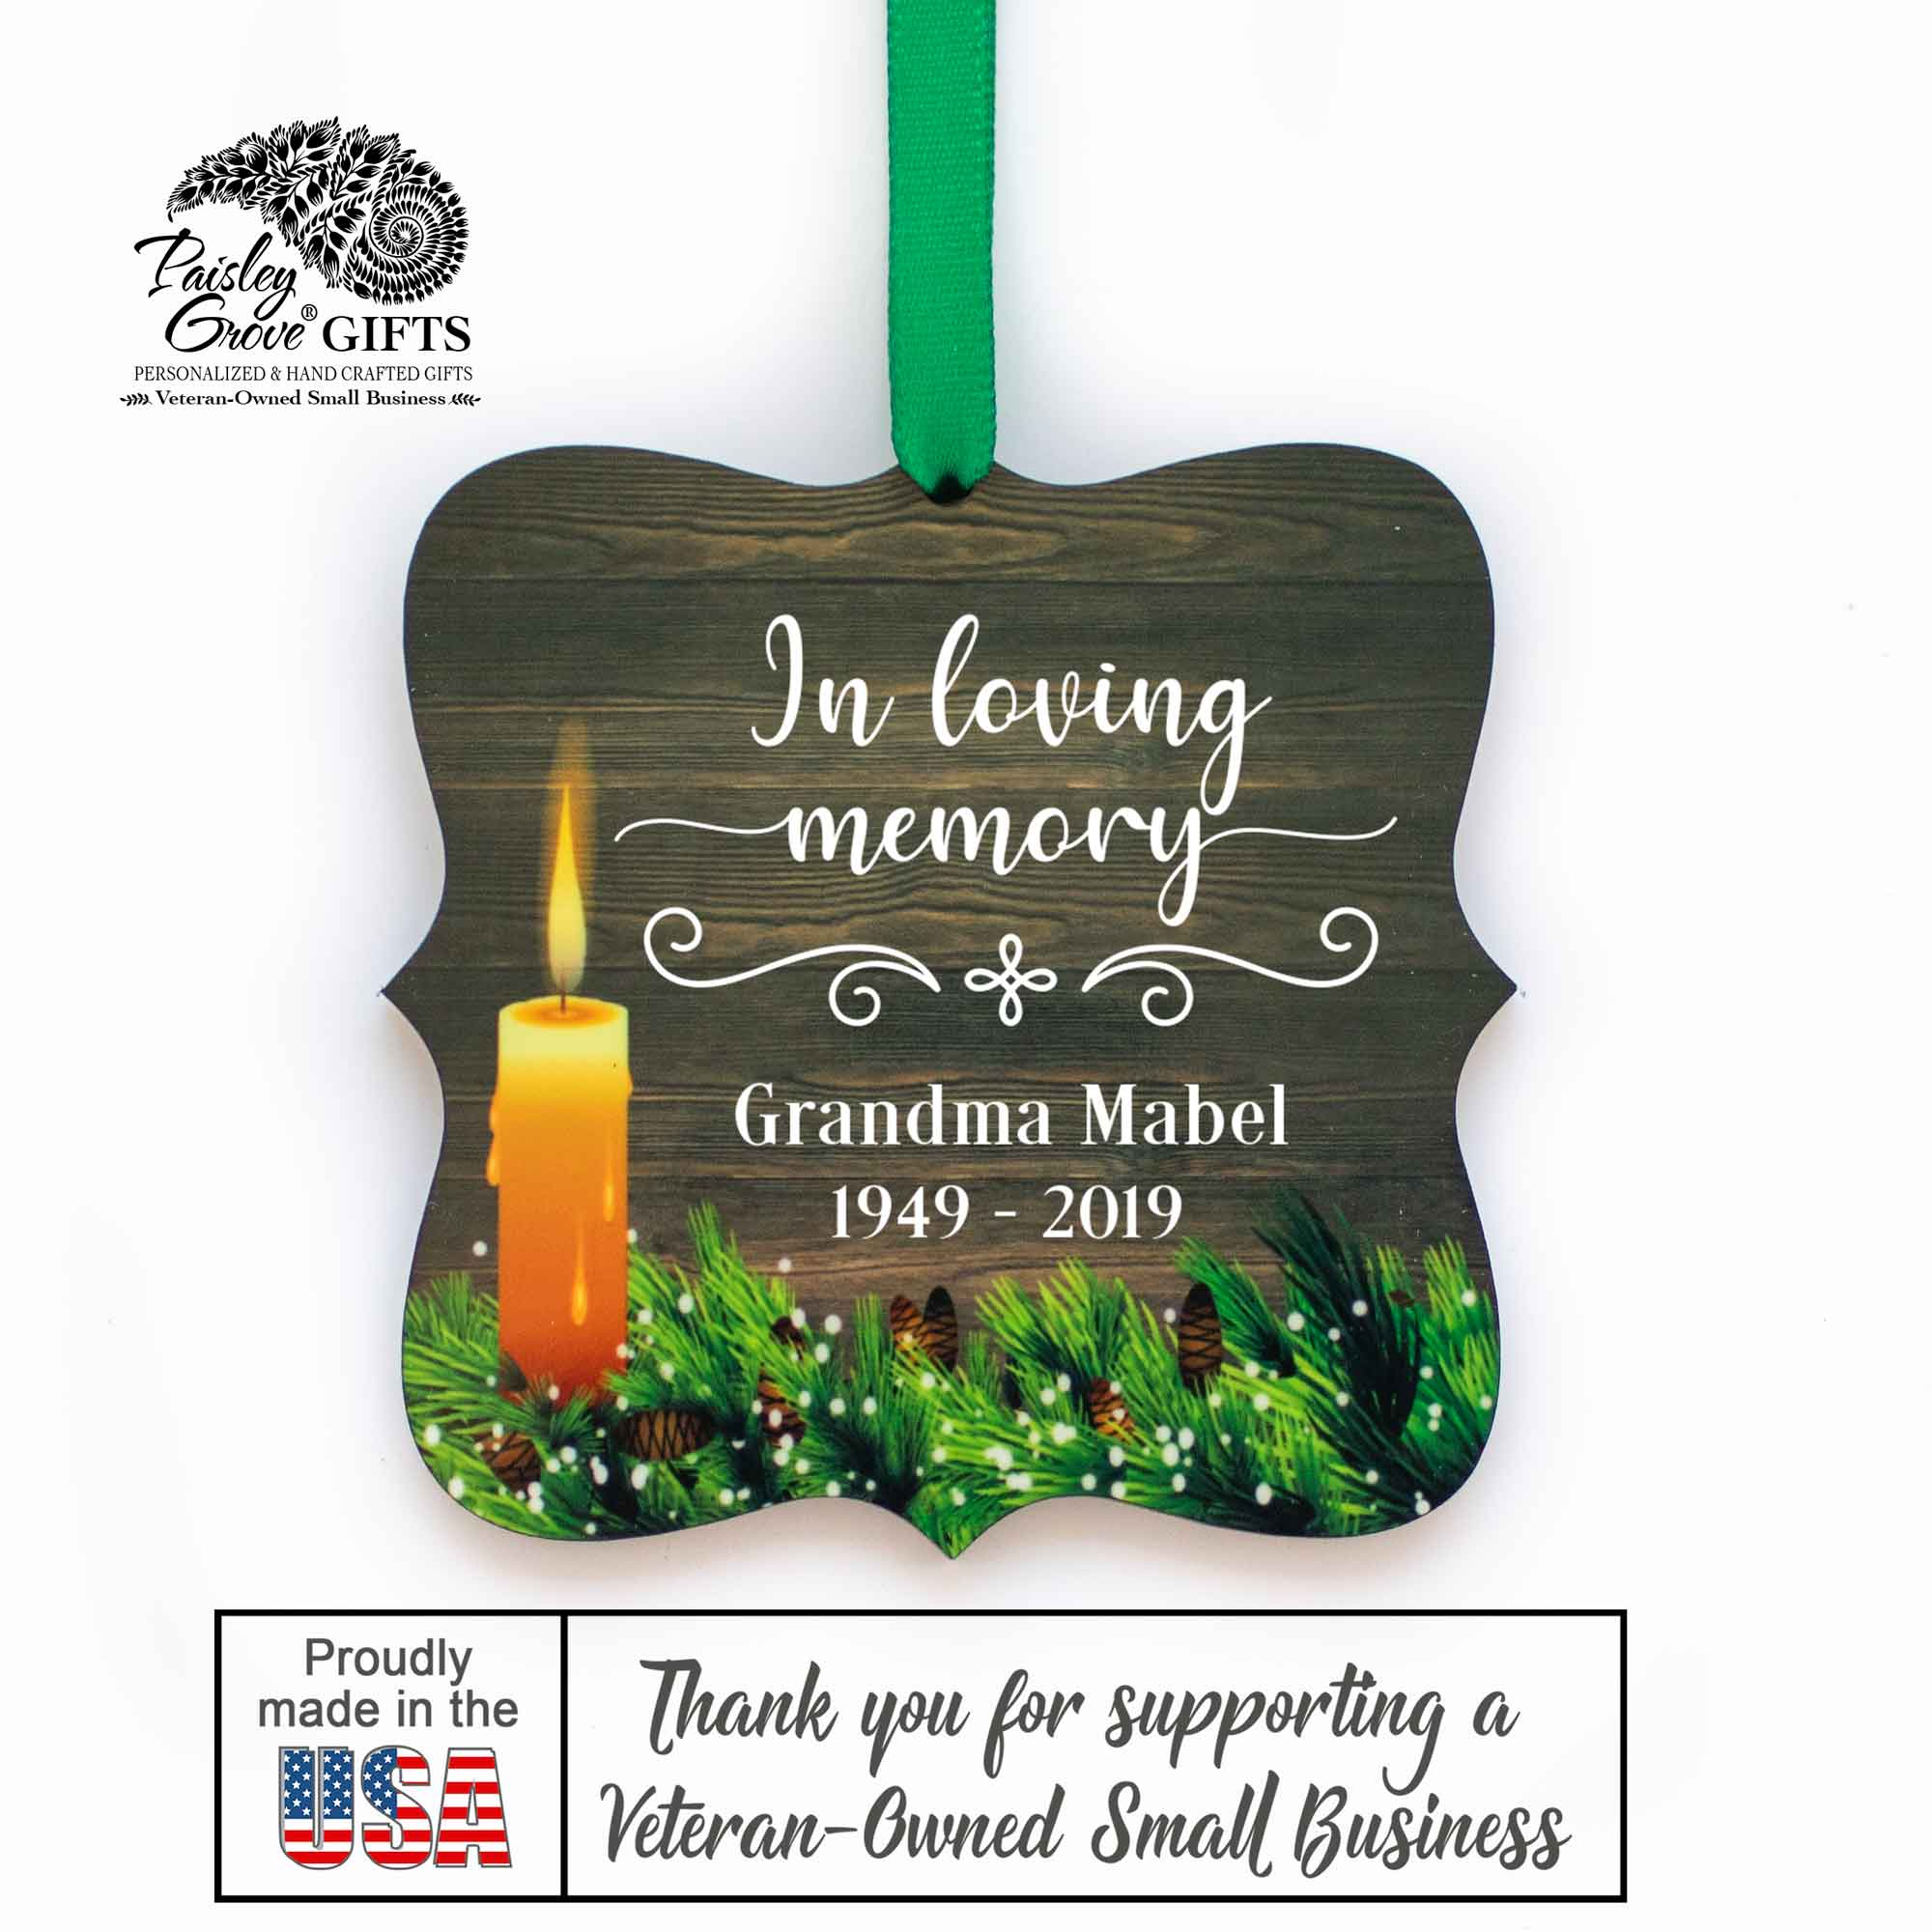 CopyrightPaisleyGroveGIFTS S508c2 In Loving Memory Customized Christmas Ornament Bereavement Gift Made in the USA